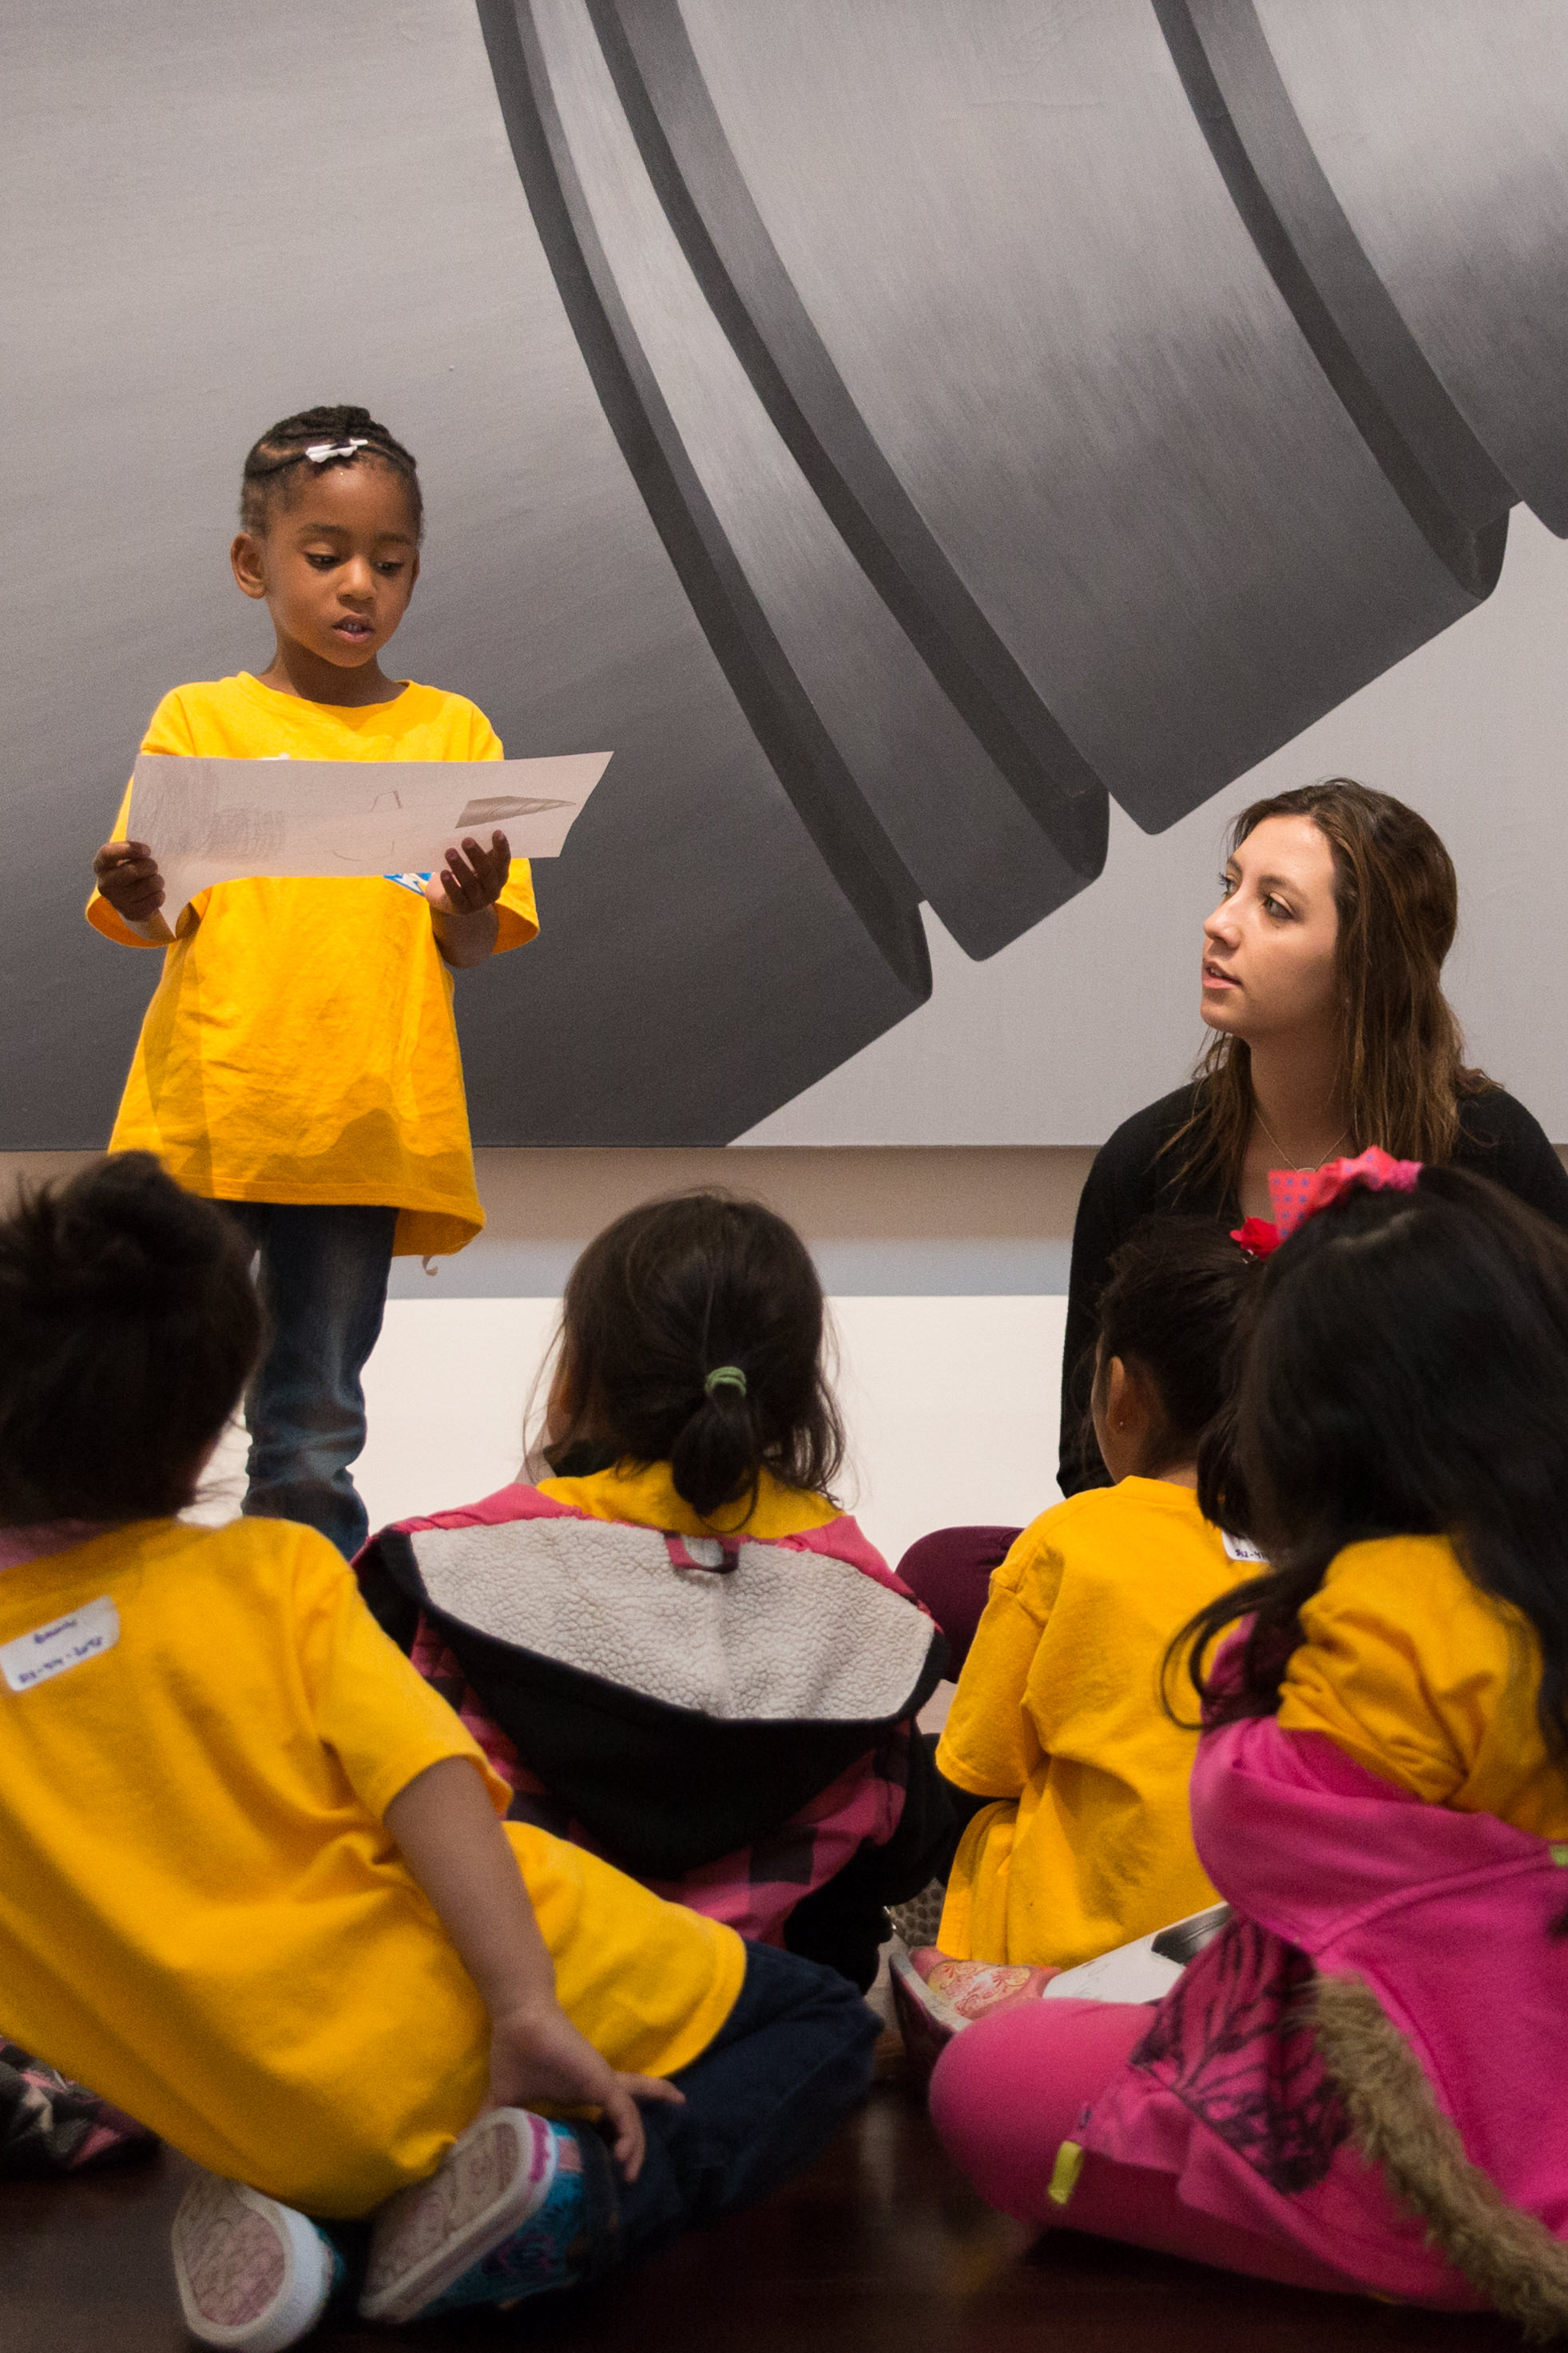 elementary school students discuss art in the Blanton museum